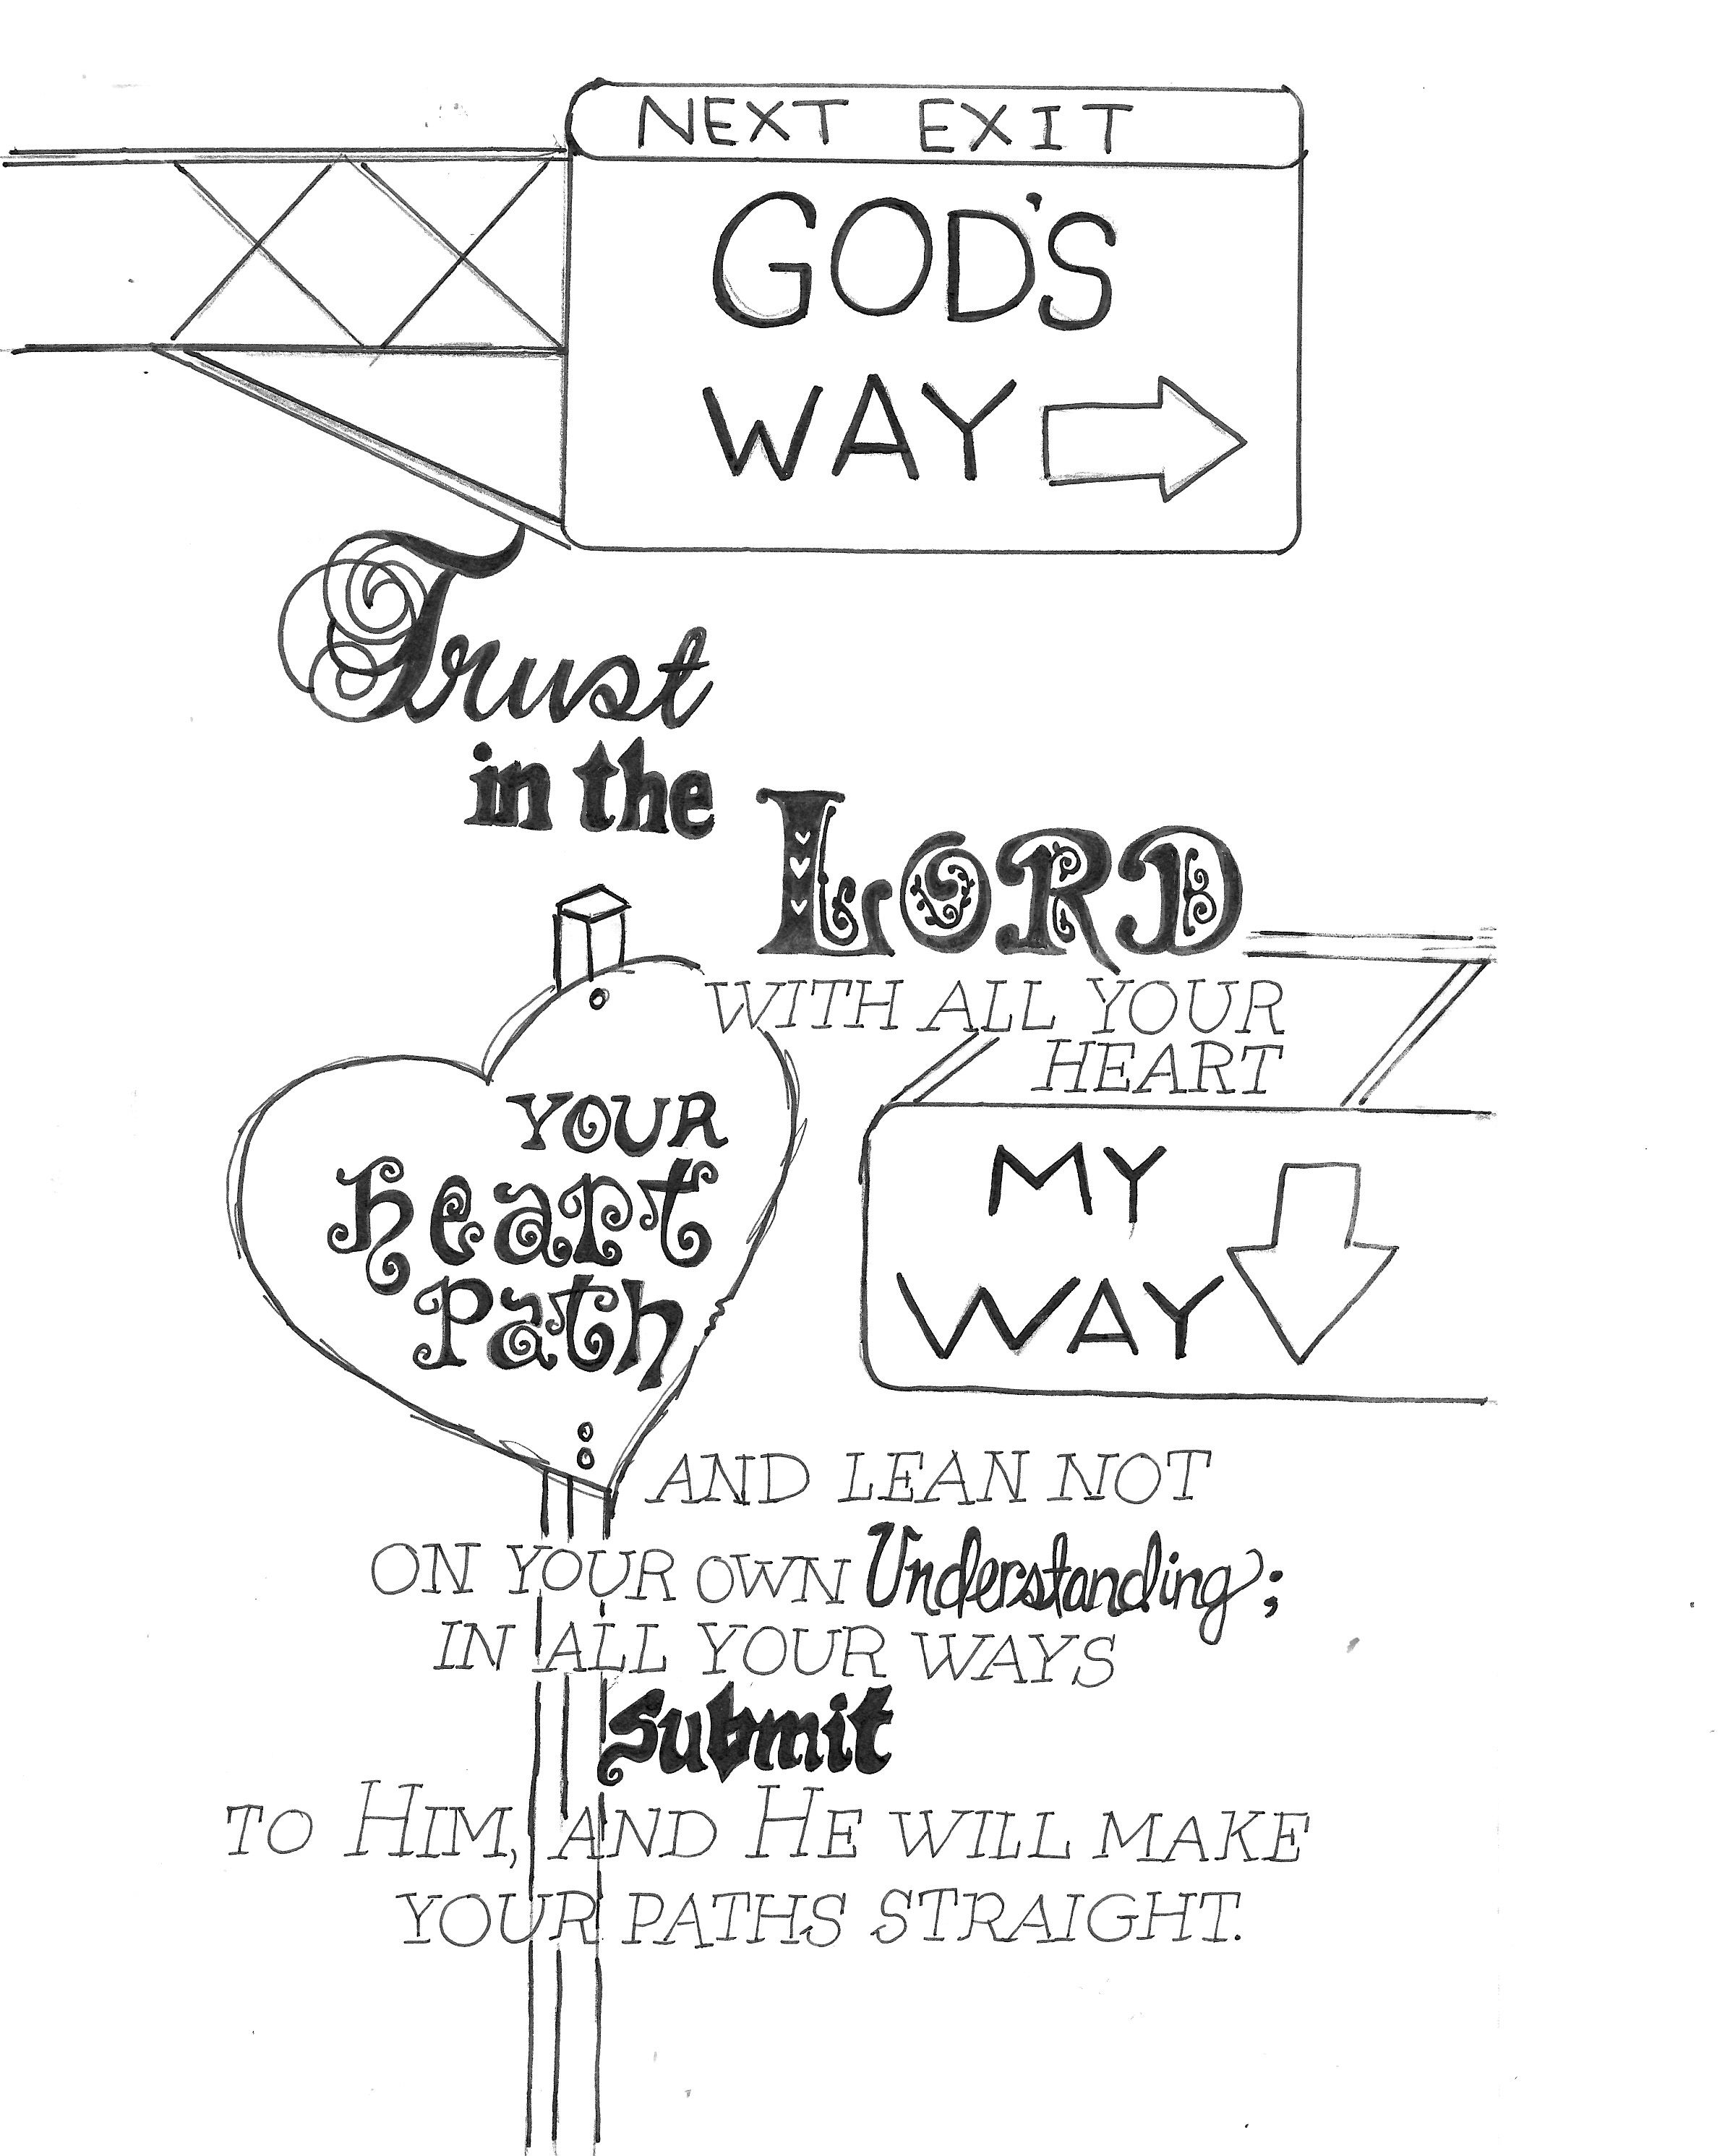 God Lead Me To Recreate This Idea Proverbs 3 5 We Are All Travelers Xox Free Scripture Co Illustrated Faith Bible Bible Coloring Pages Bible Verse Coloring